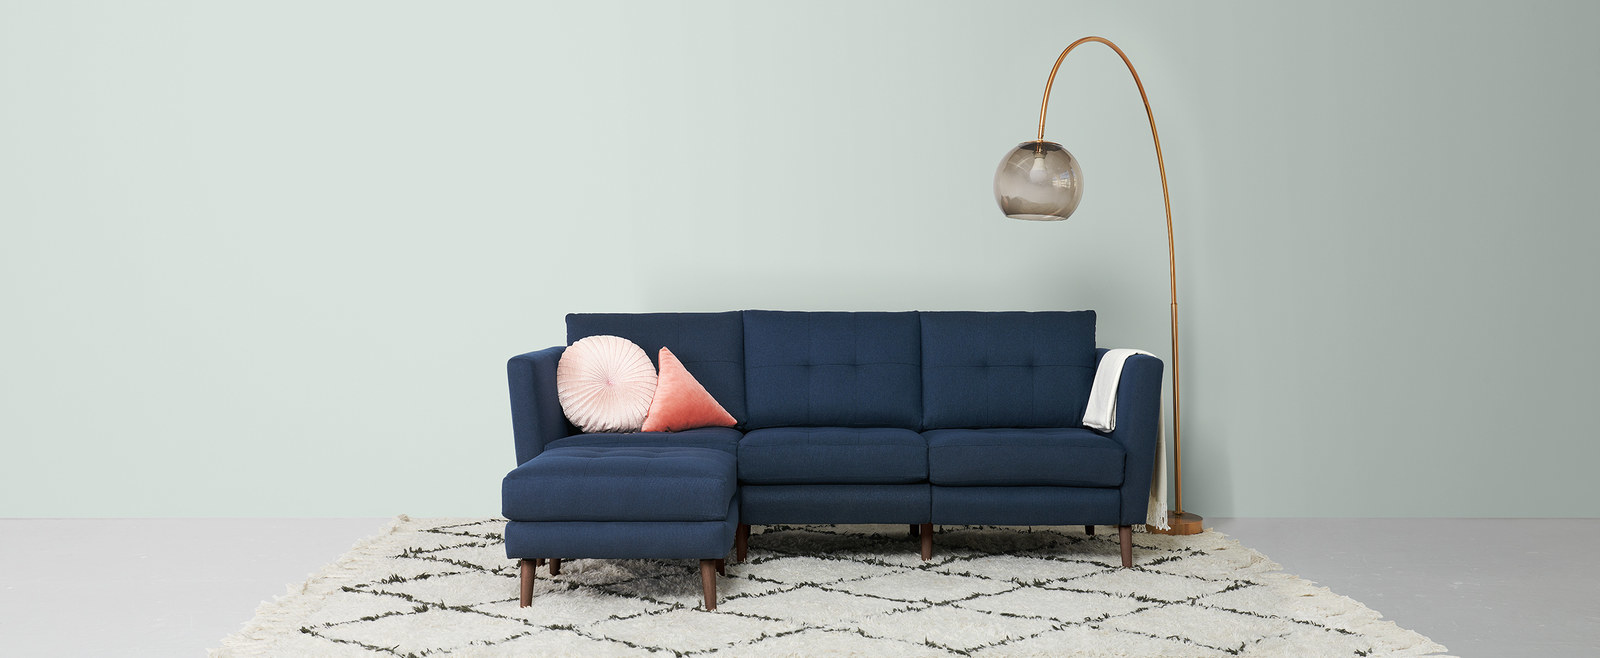 Burrow Only Offers One Sofa But You Get To Decide The Color, Size, Oh, And  It Has A Hidden USB Charging Port.